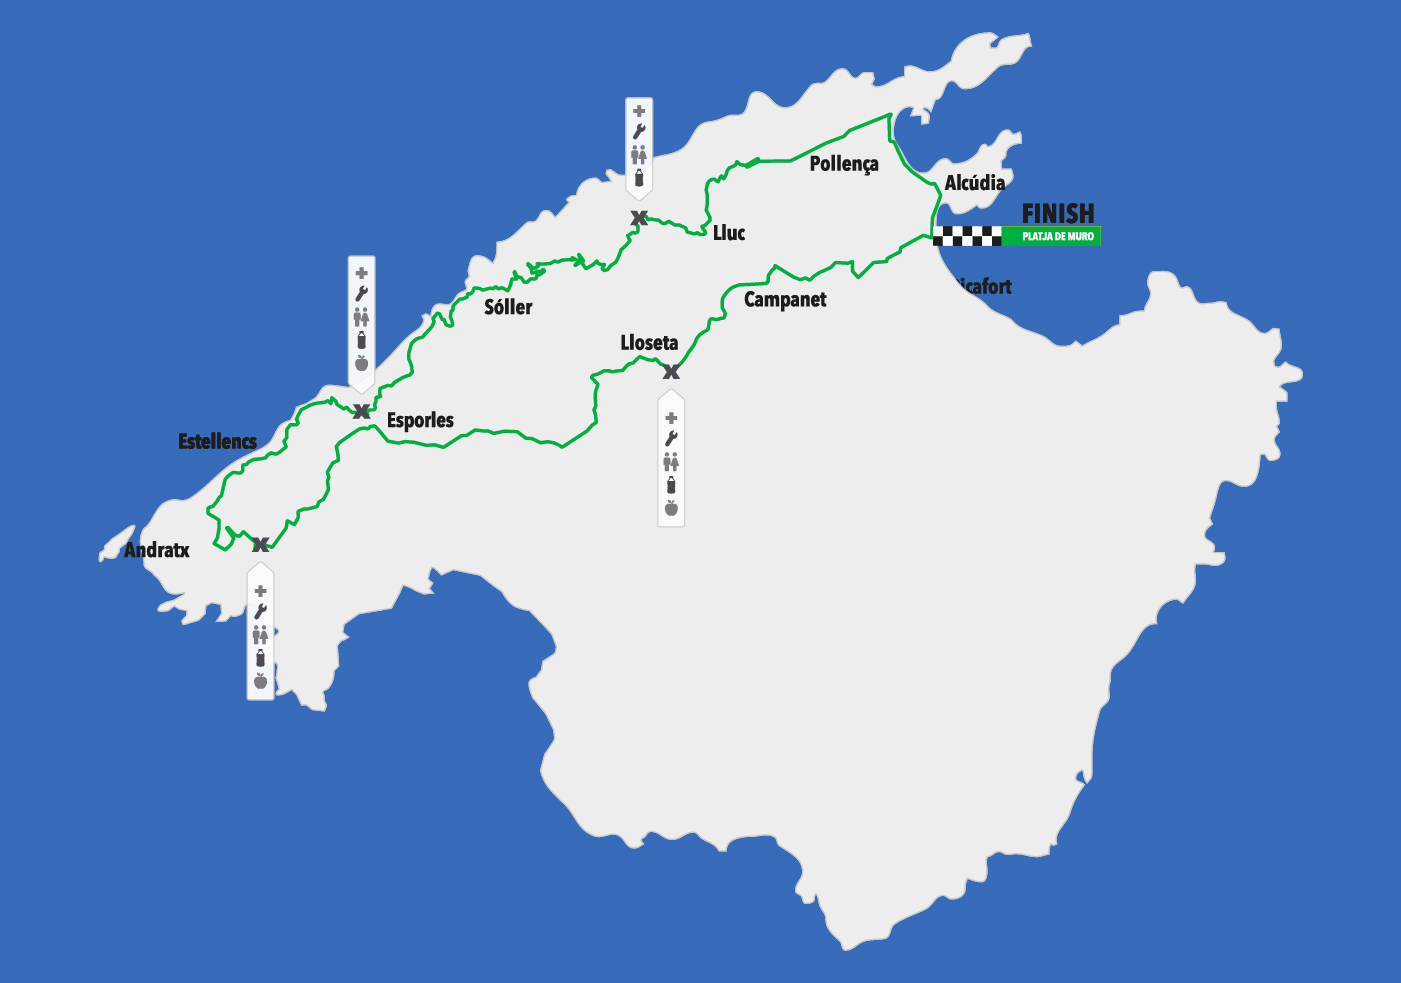 Mallorca 312. Everything you need to know about this cycling event